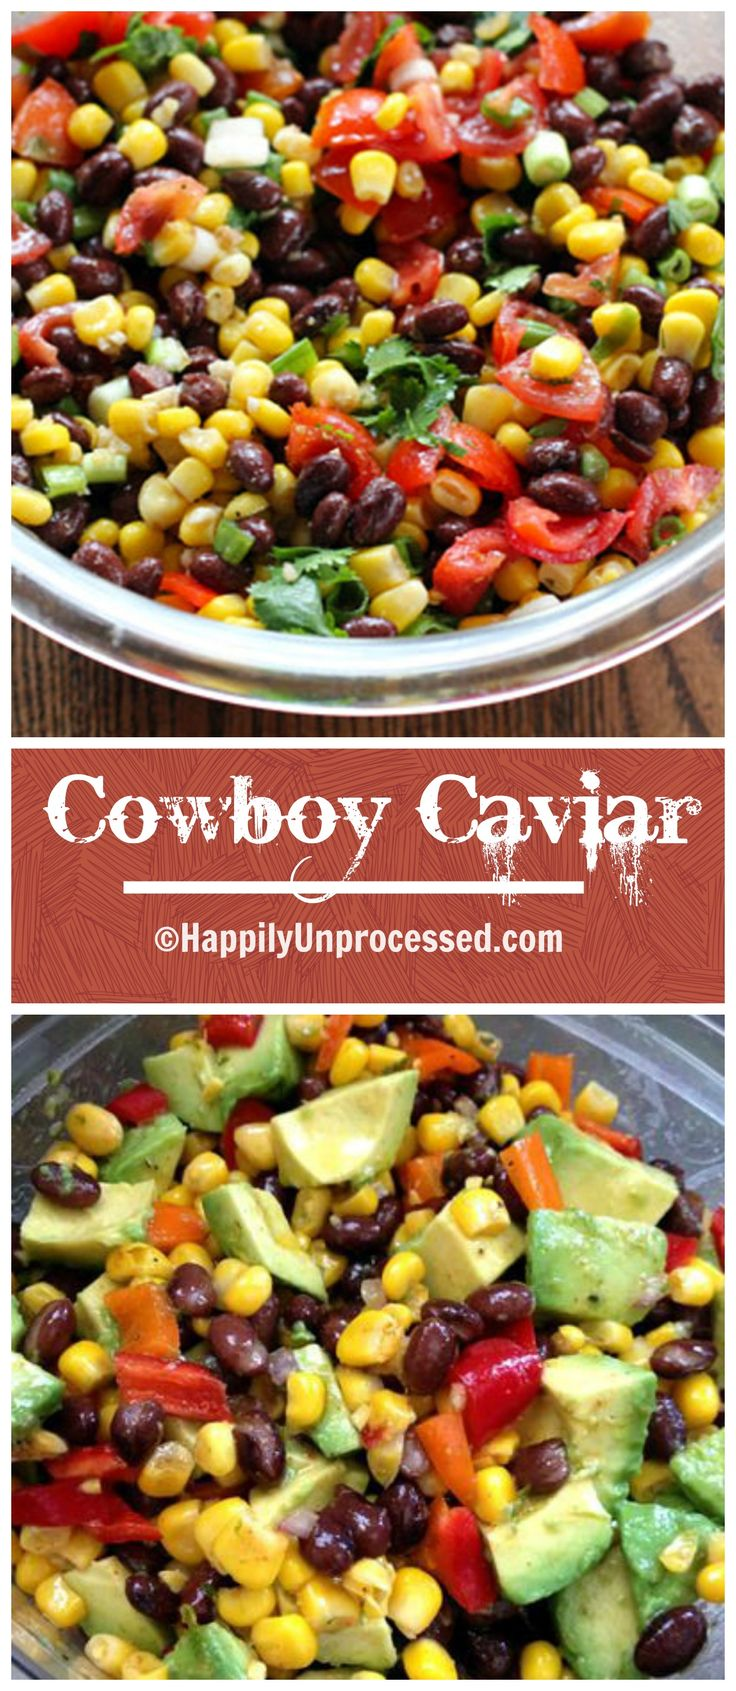 Cowboy Caviar is a melody of black beans, corn, red onion, cherry tomatoes, garlic & avocados marinated in a cilantro lime vinaigrette #happilyunprocessed #cowboy #caviar #glutenfree